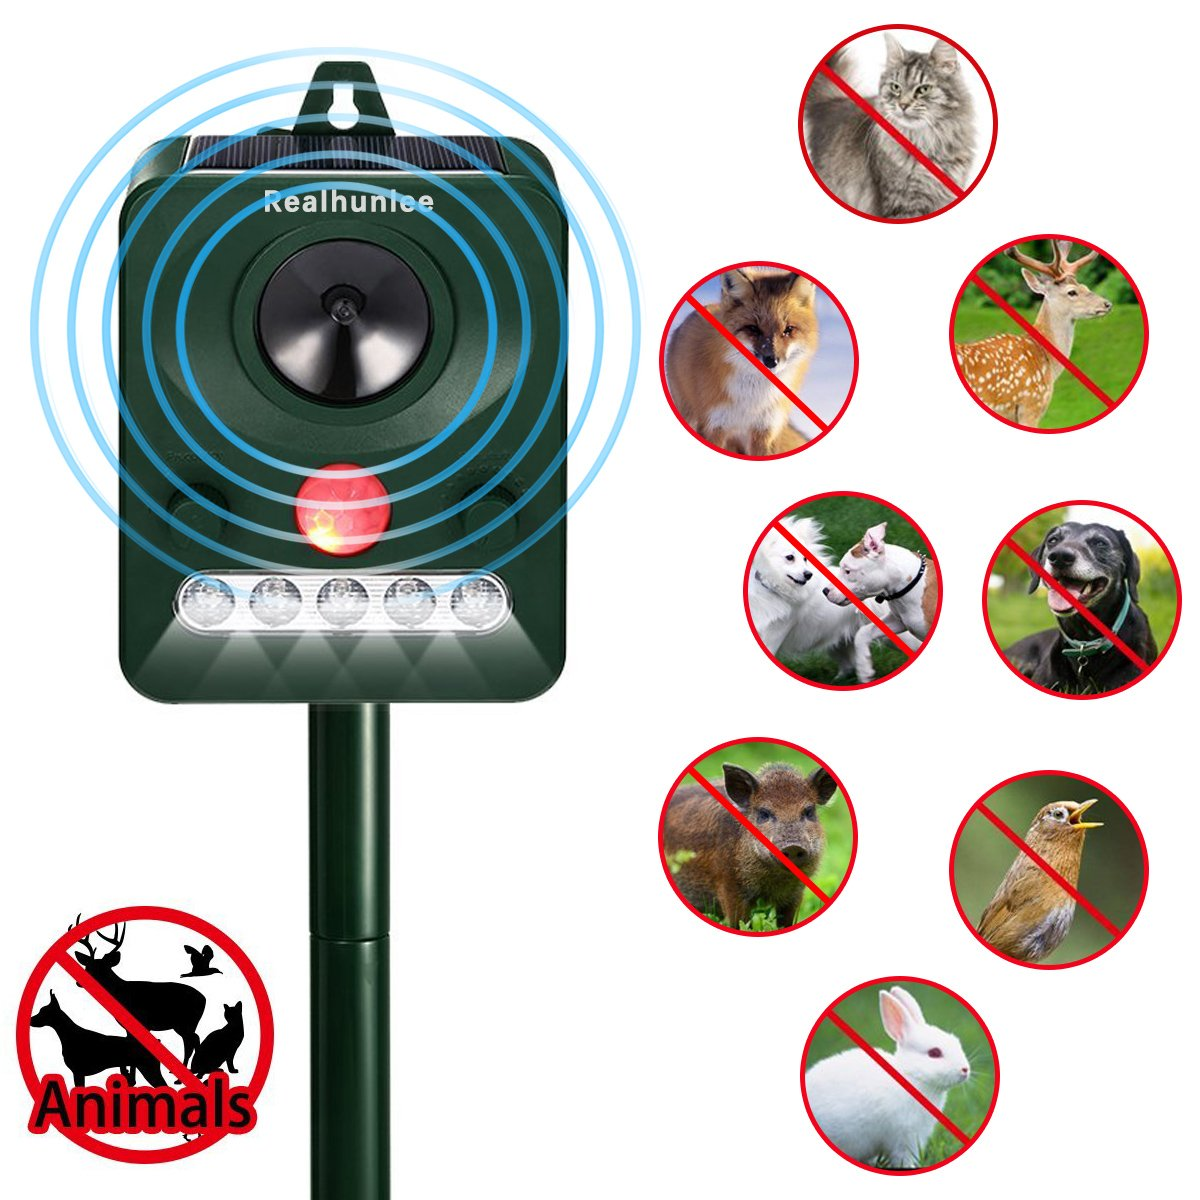 2018 New Solar Powered Ultrasonic Animal And Pest Very Basic Motion Tracking With 2 Pir Sensors Lucky Larry Repeller Outdoor Waterproof Effective Control Repellent Sensor Flashing